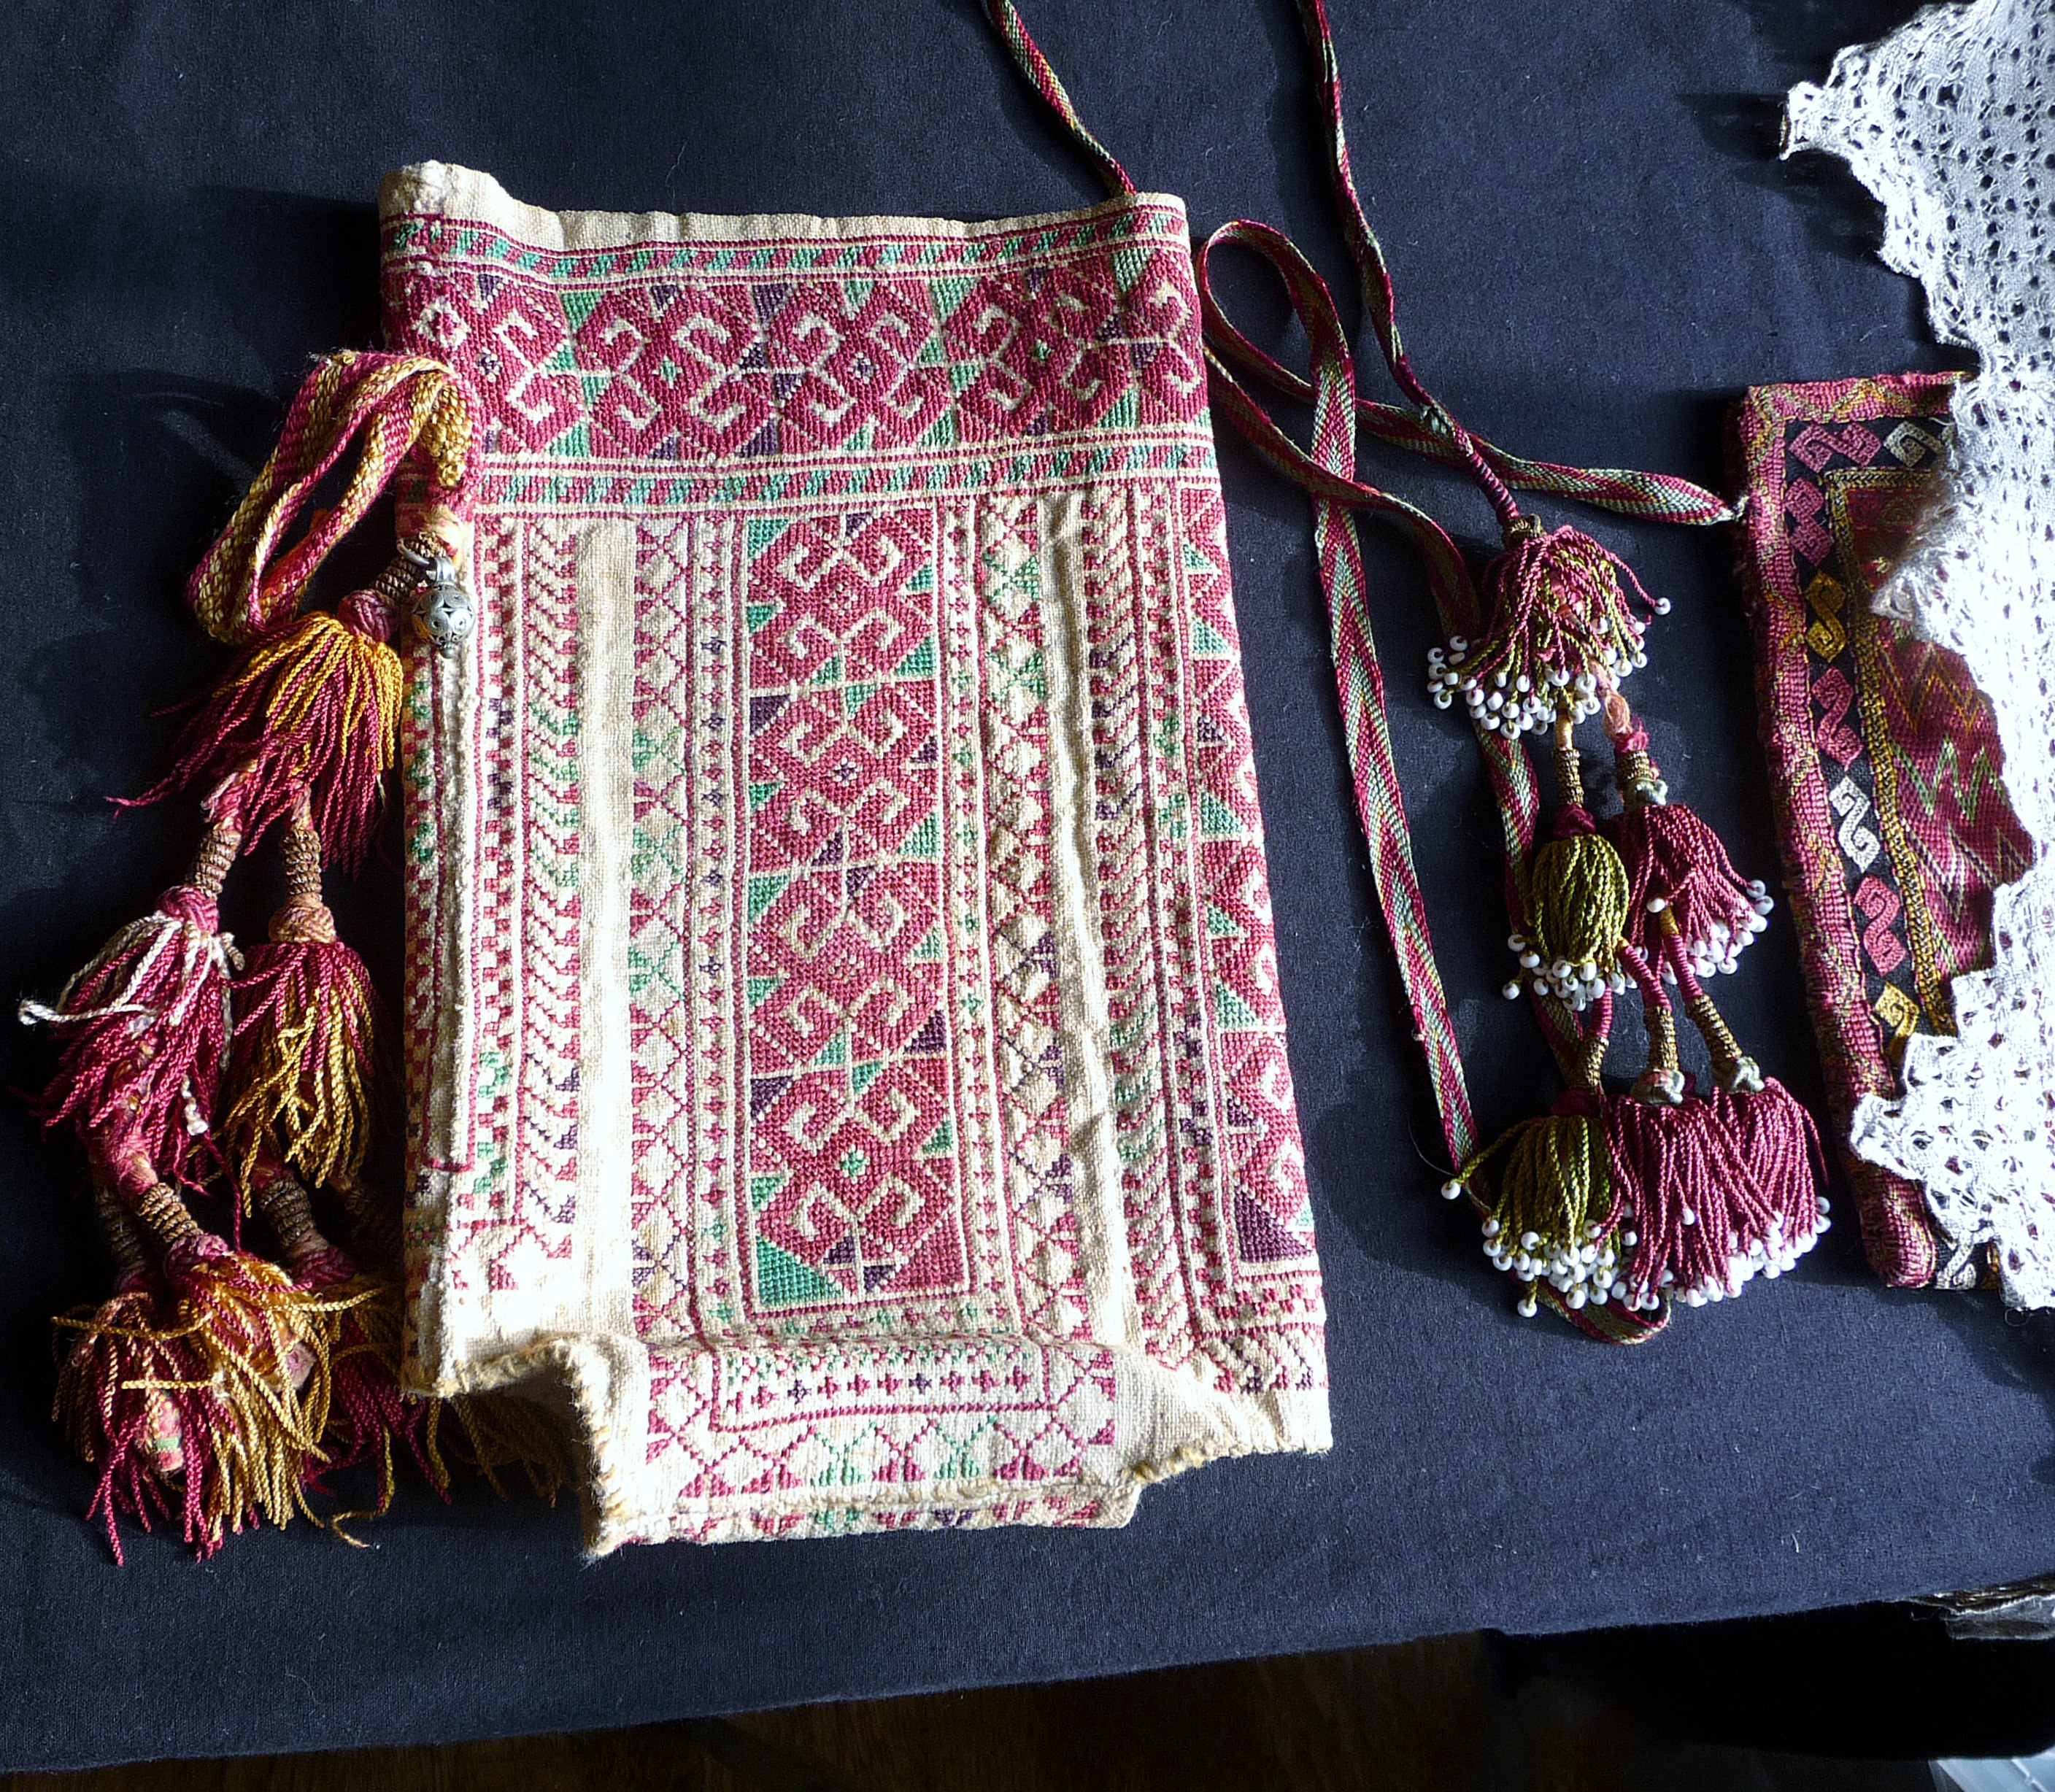 antique embroidered bag by Qaraqalpaq people